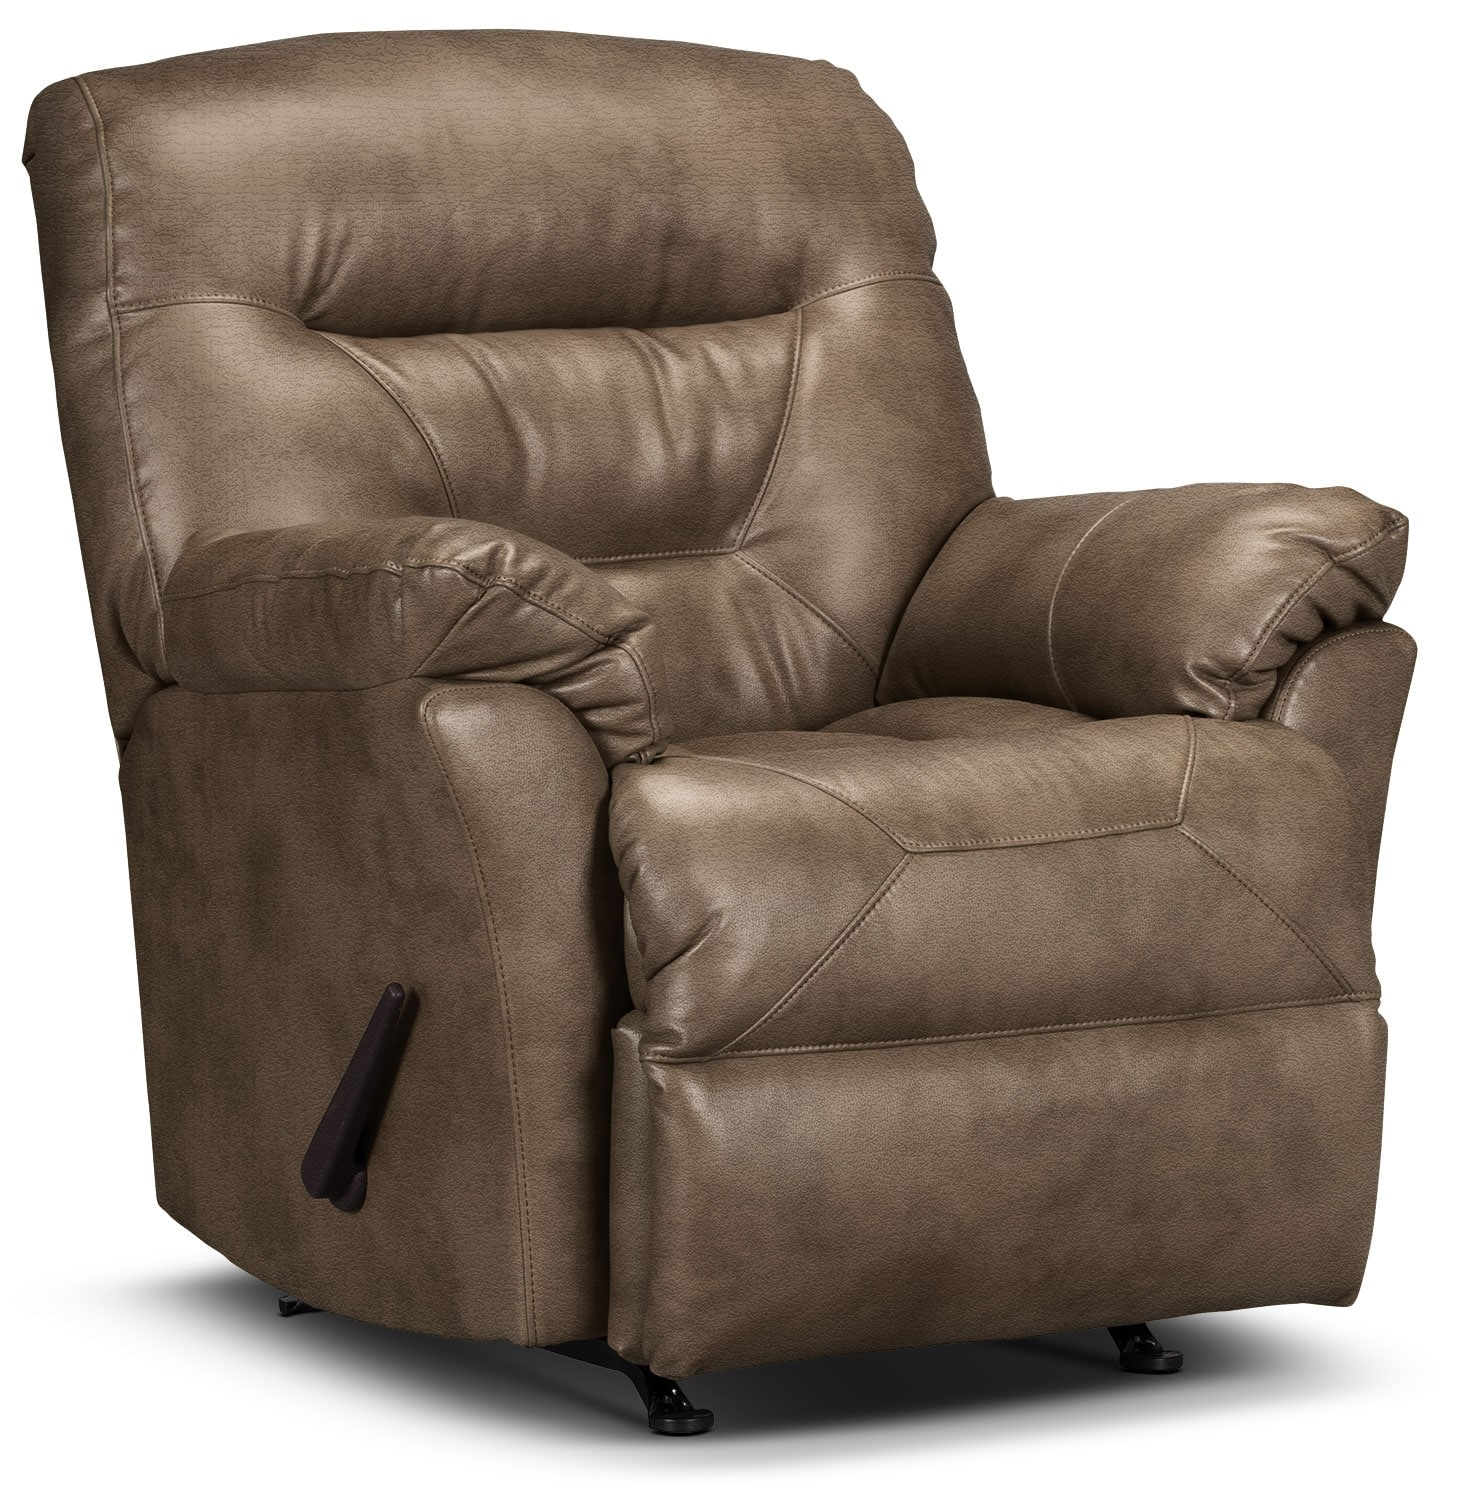 Designed2B Recliner 4579 Leather-Look Fabric Rocker Recliner - Tobacco